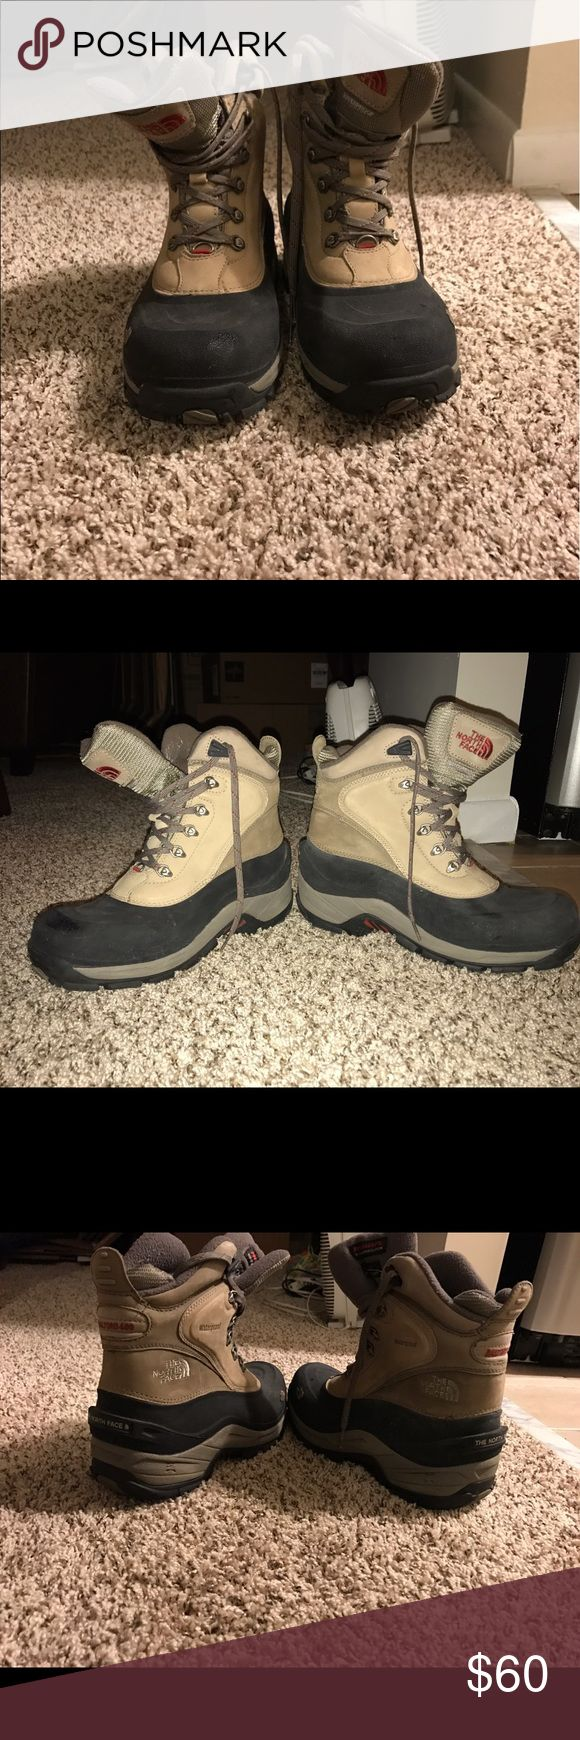 North Face Women's Insulated Boots Gently used North Face women's winter boots. Insulated Shoes Winter & Rain Boots